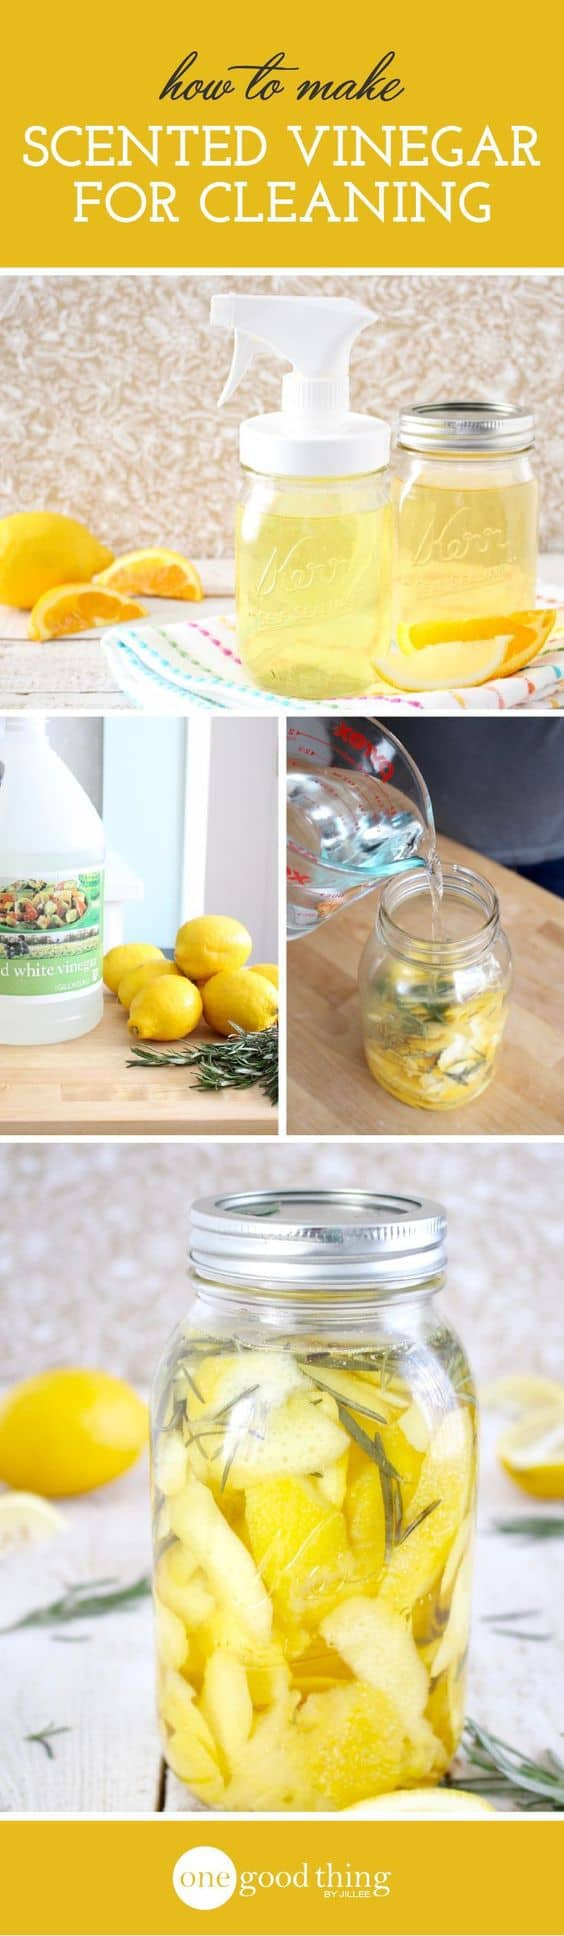 DIY Cleaning Vinegar - Cleaning Tips